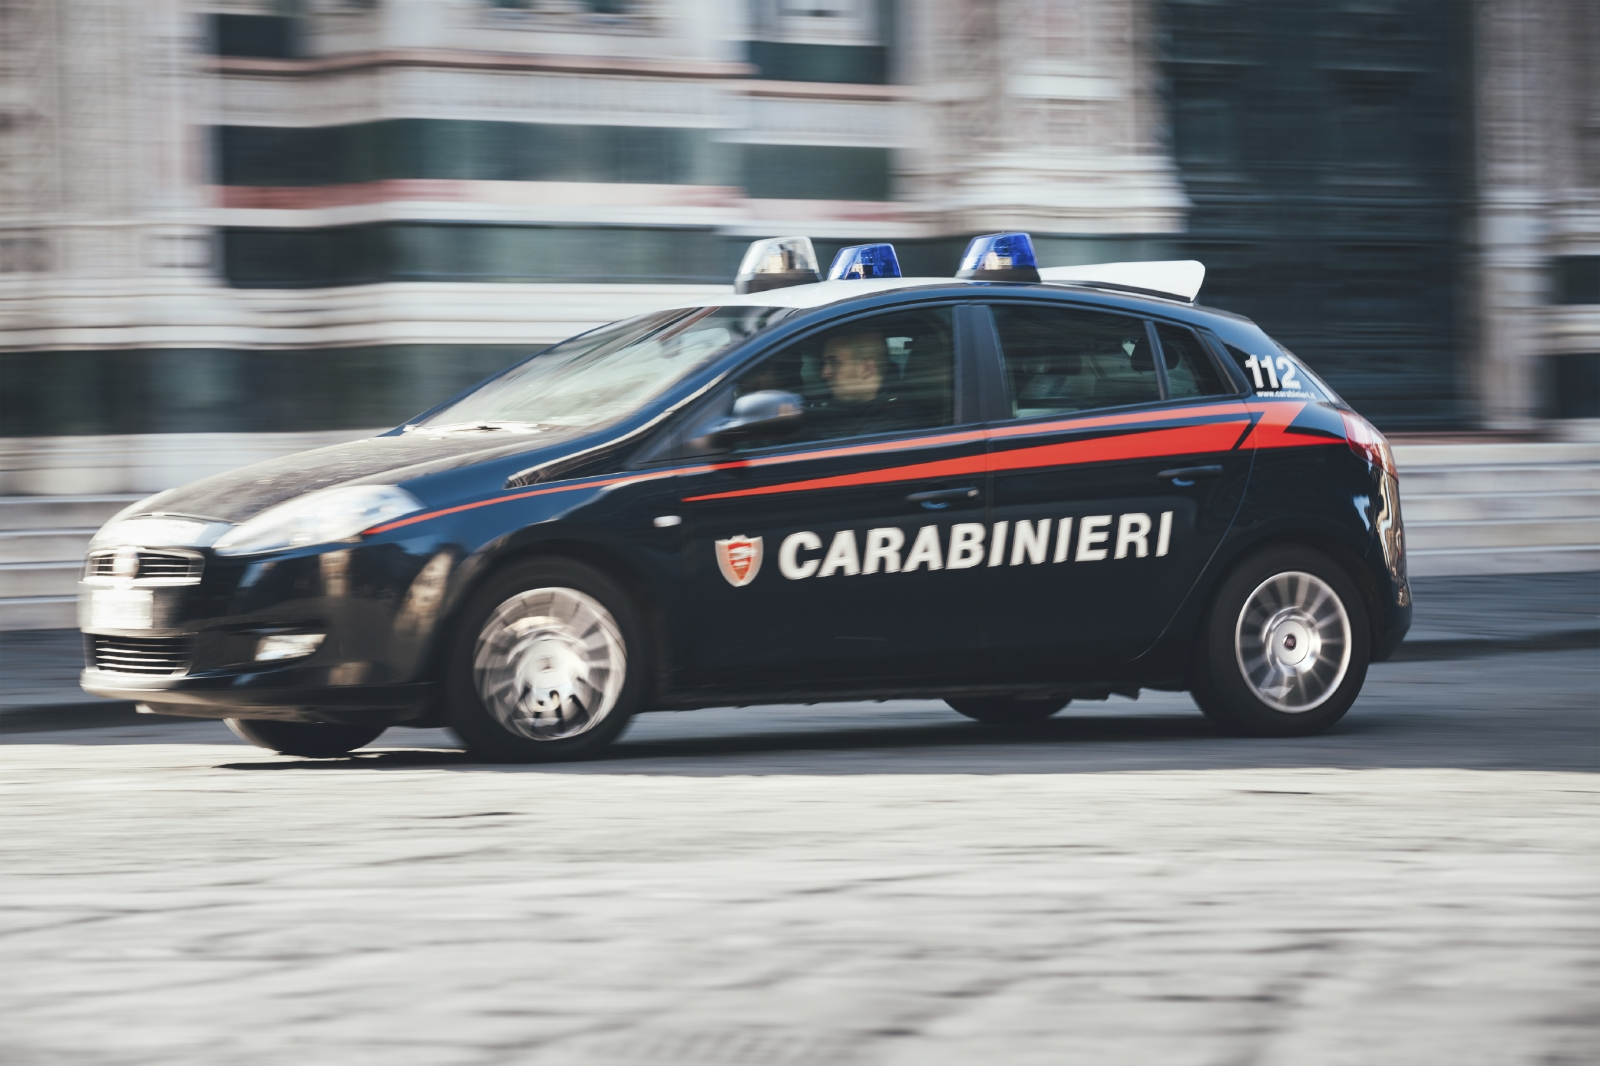 Italy:  Swedish model freed by Carabinieri